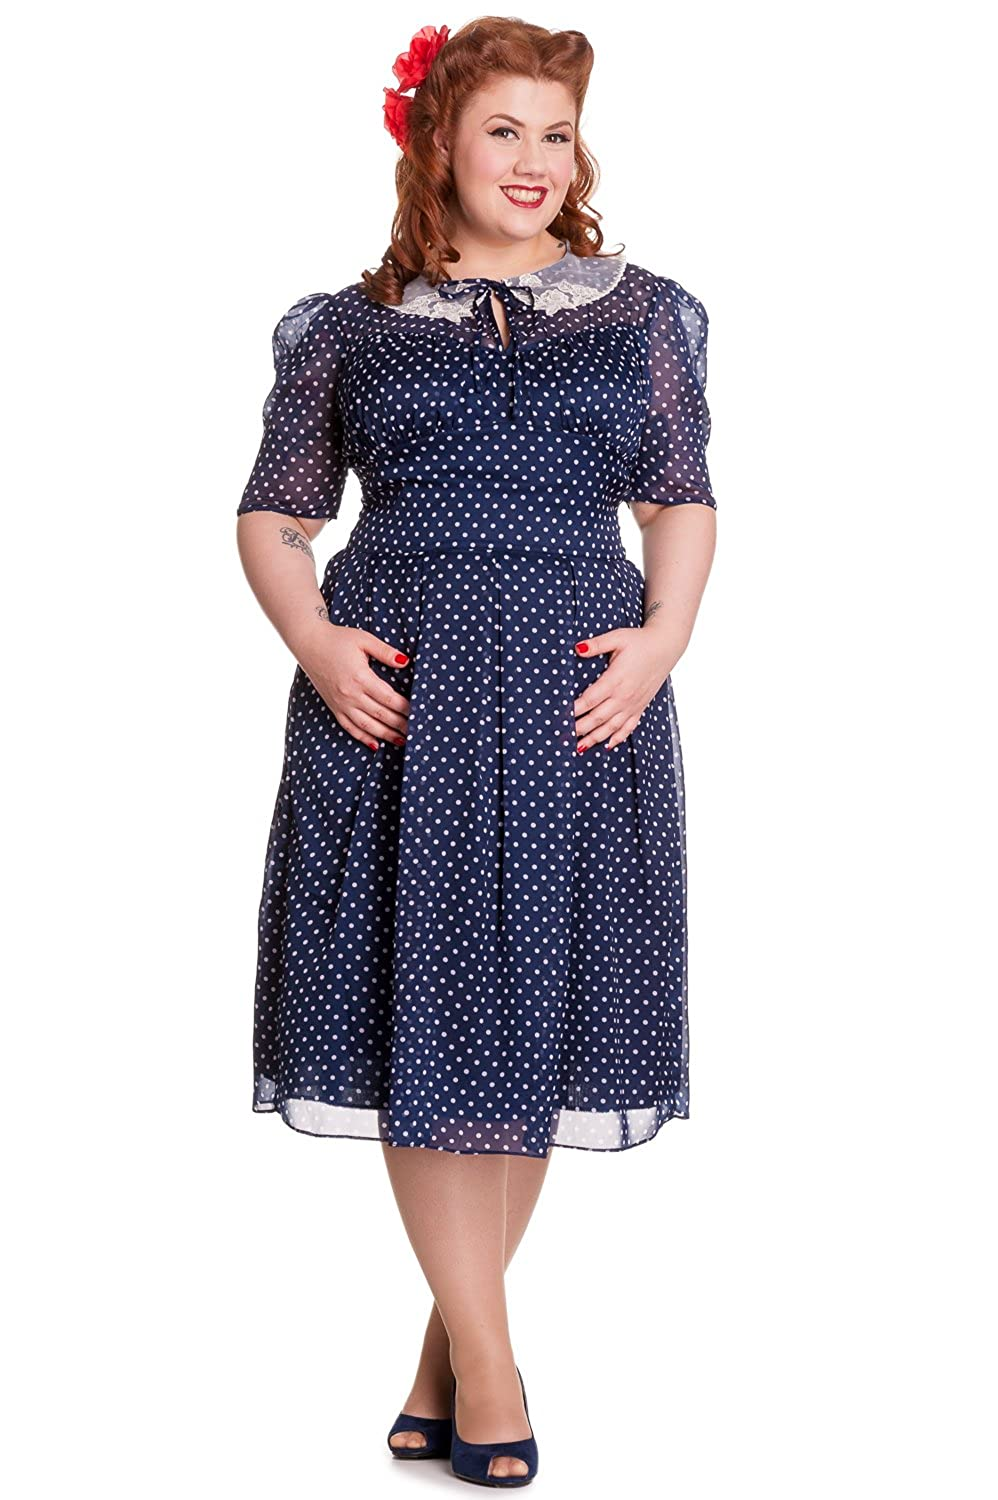 1950s Polka Dot Dresses Hell Bunny Plus 40s 50s Vintage Cynthia Polka Dot Chiffon Dress $75.00 AT vintagedancer.com